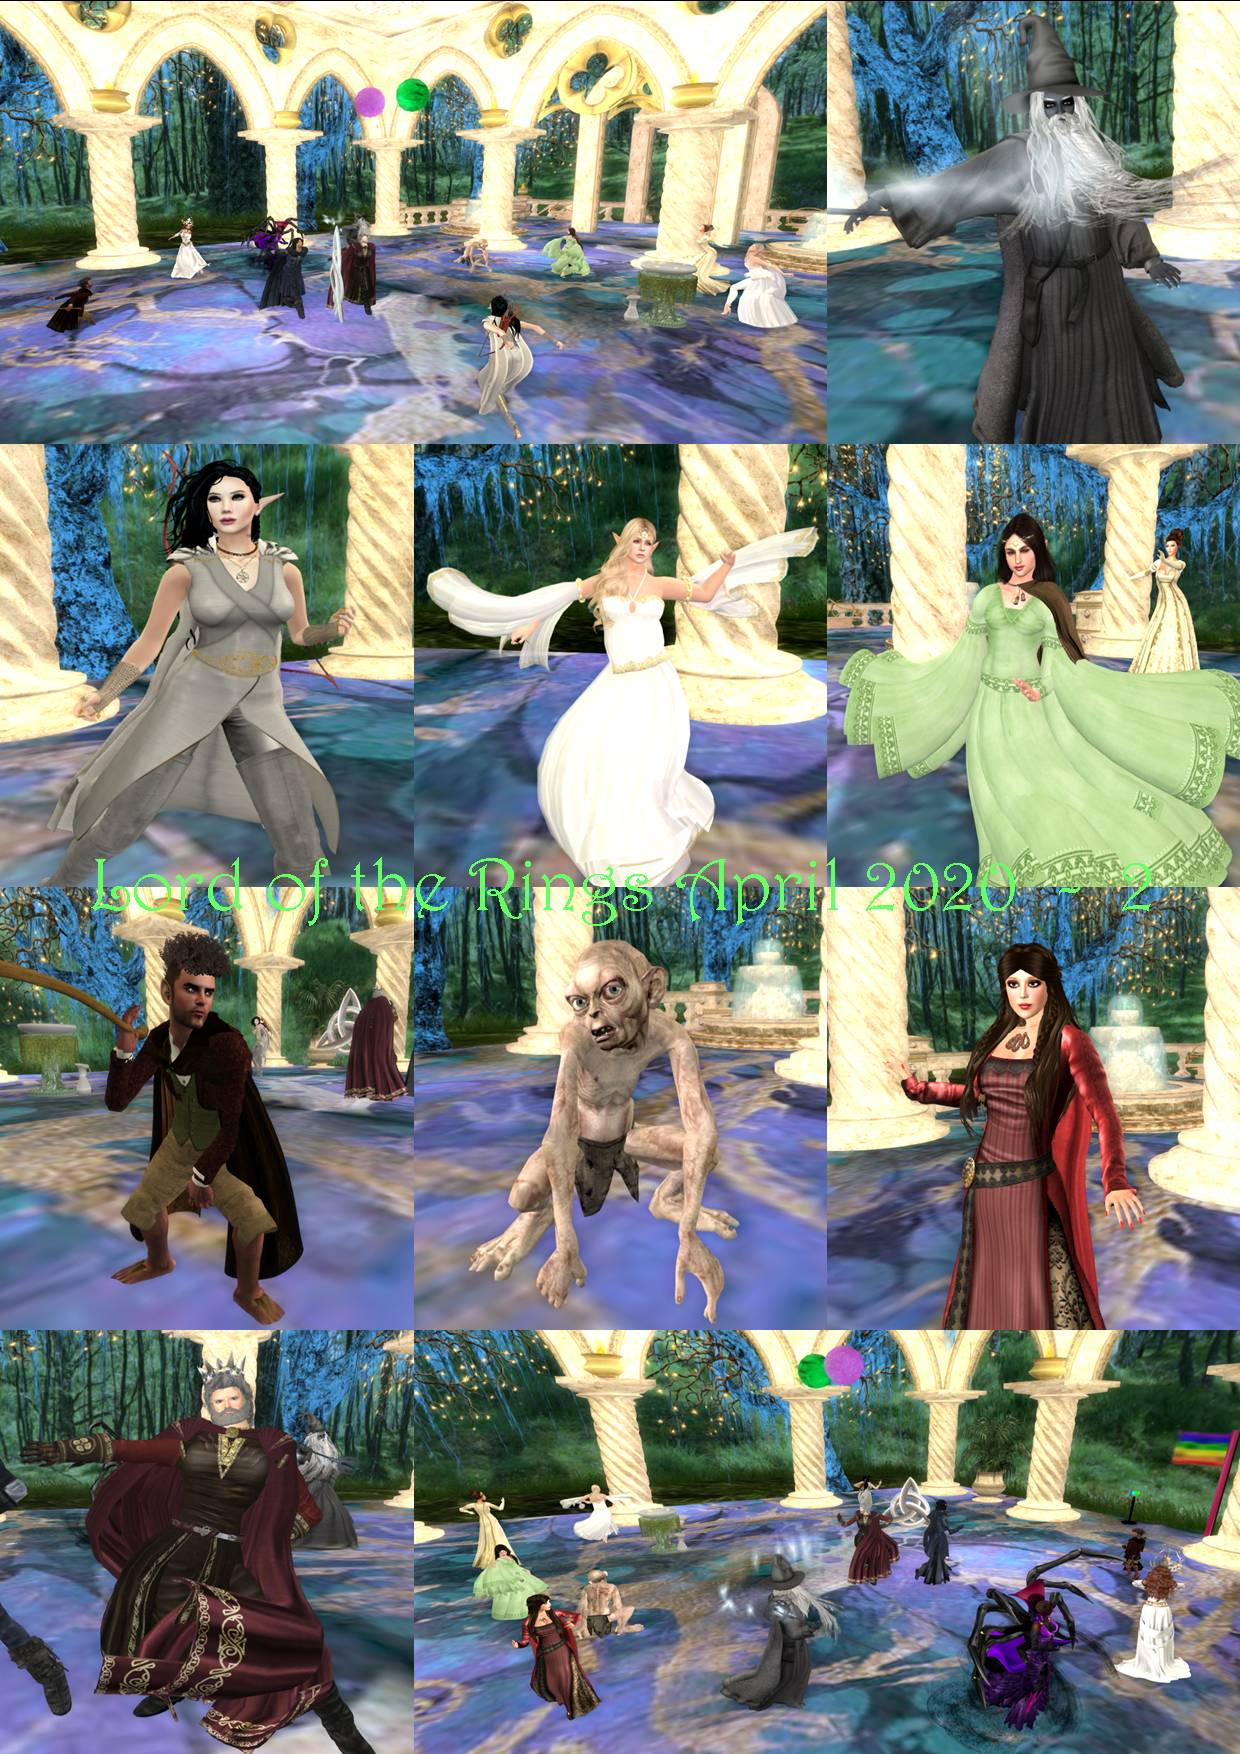 LORD OF THE RINGS PARTY COLLAGE APRIL 2020 - 2